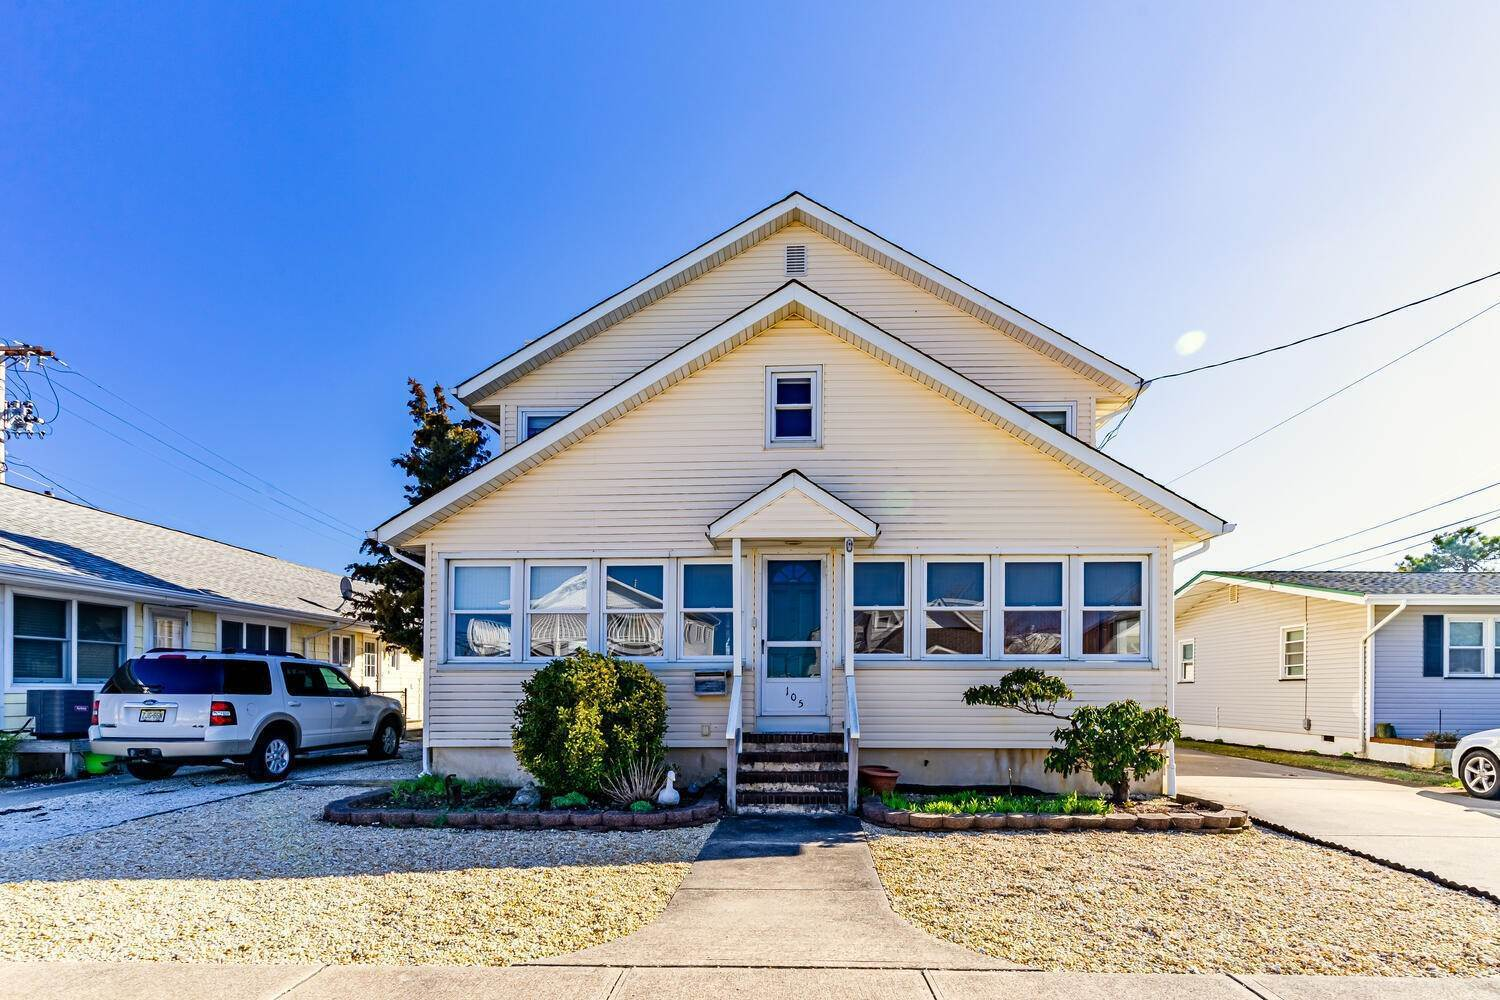 Property for Sale at 105 L Street Seaside Park, New Jersey 08752 United States